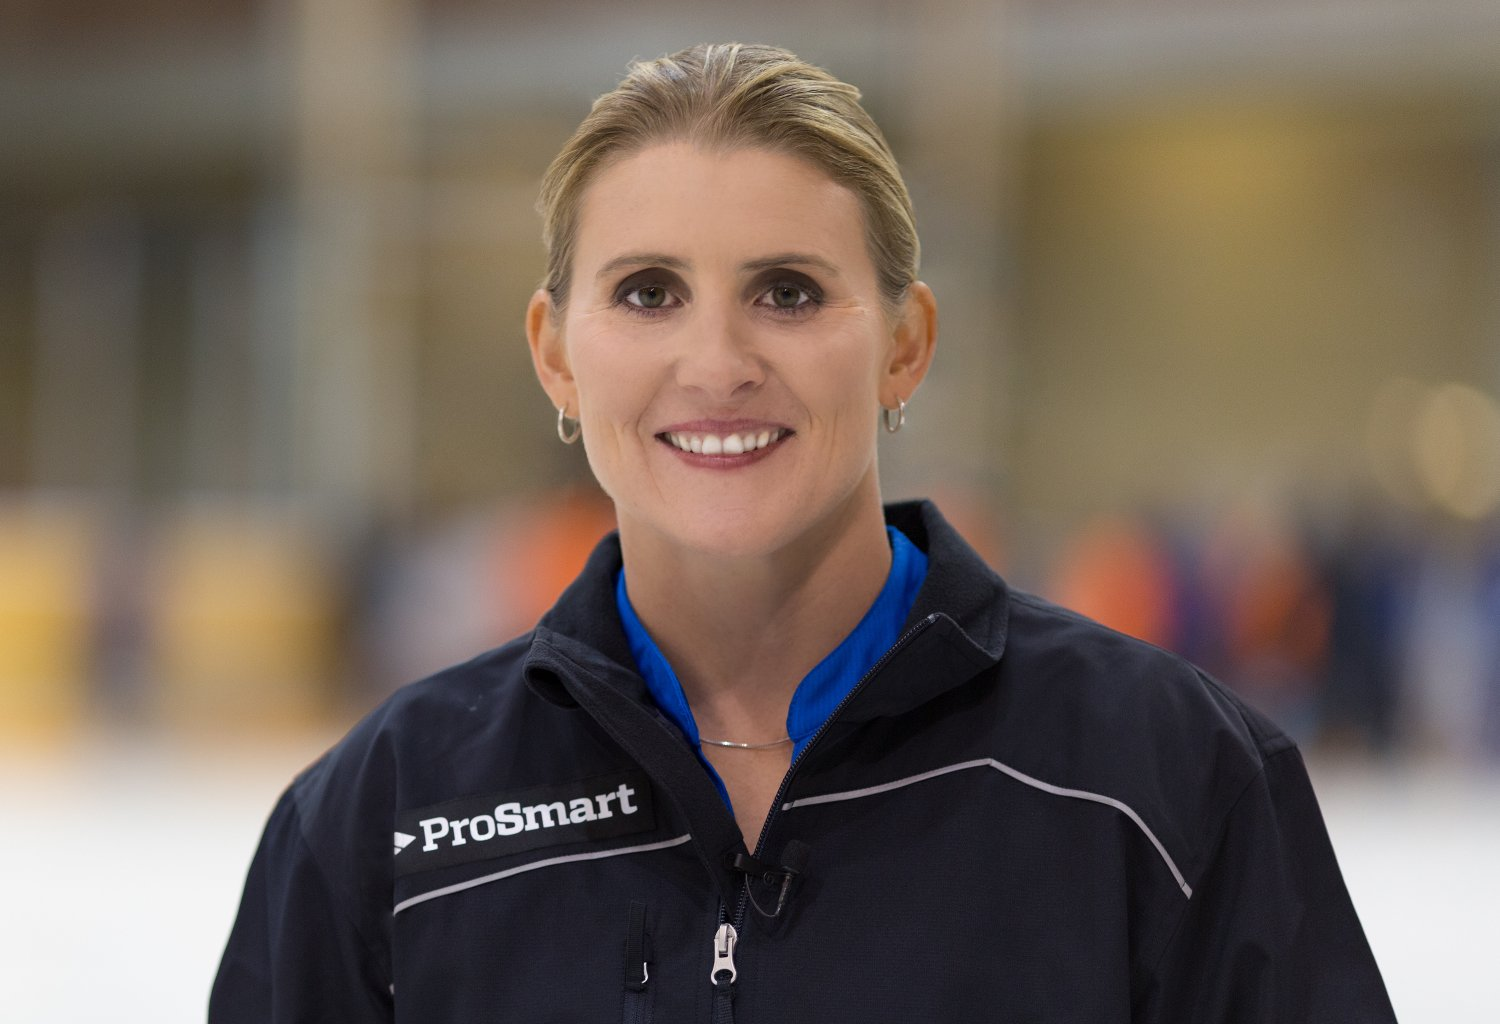 Hayley Wickenheiser  - 4-time Olympic Hockey Gold Medalist'I'm excited that all players and coaches will have access to such great development resources year after year through Sportgo!'